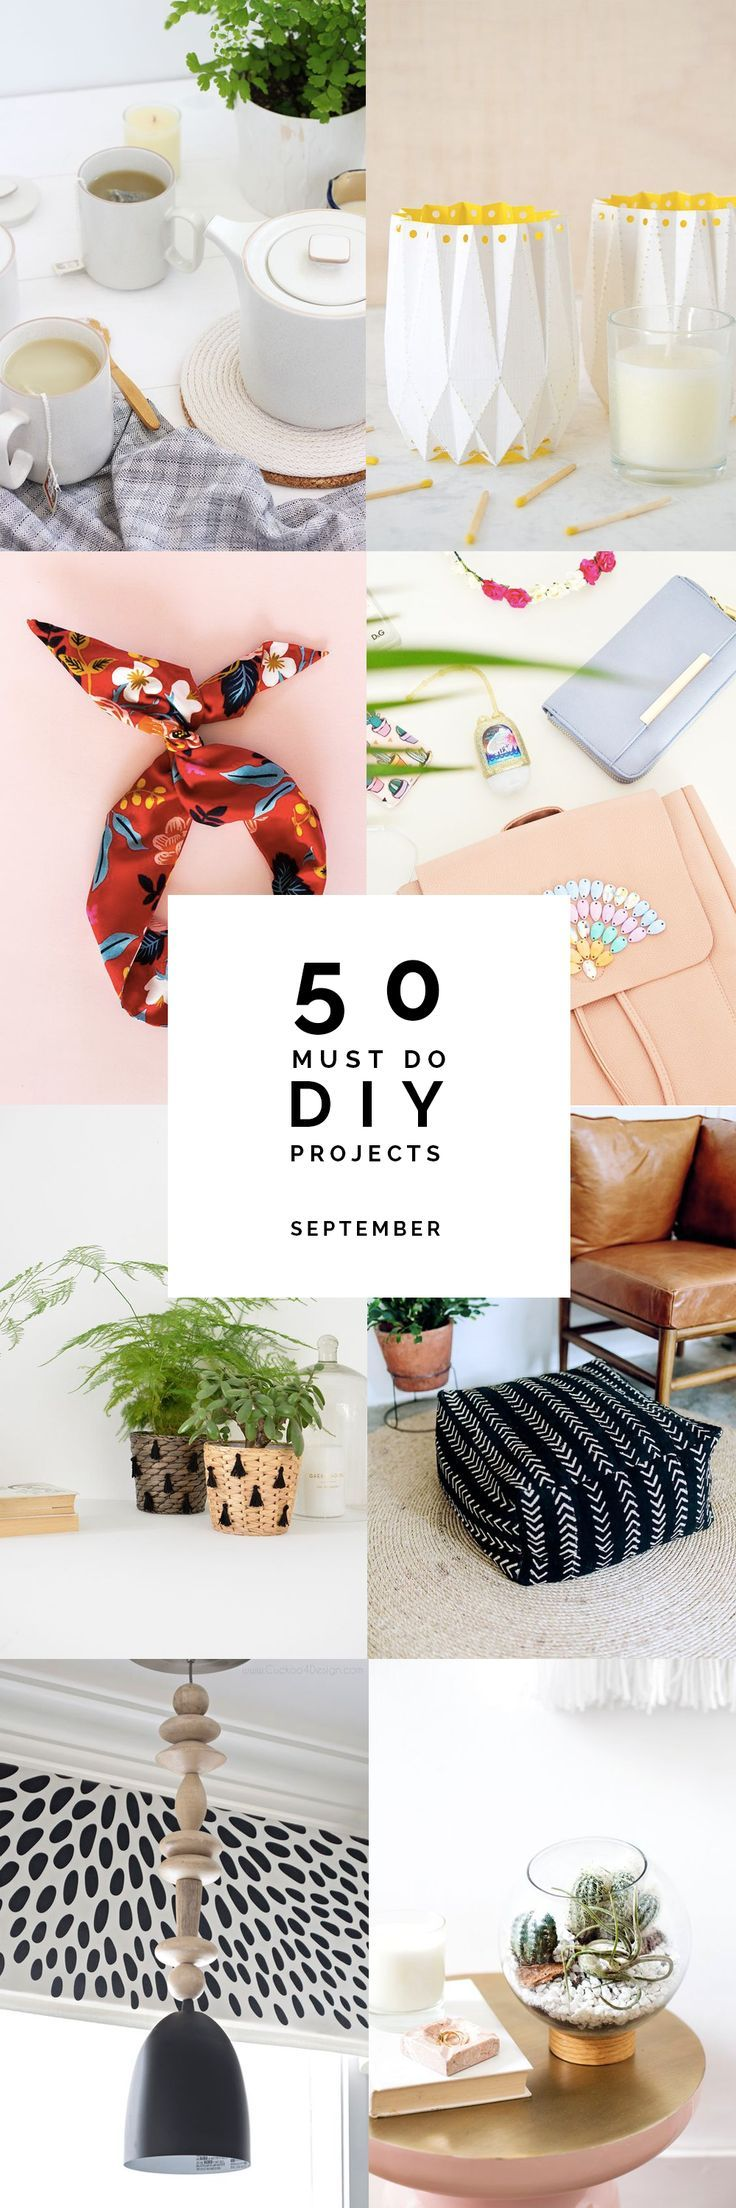 Need a little weekend DIY inspiration? Here's 50 Must Do DIY's   September. Take your pick!